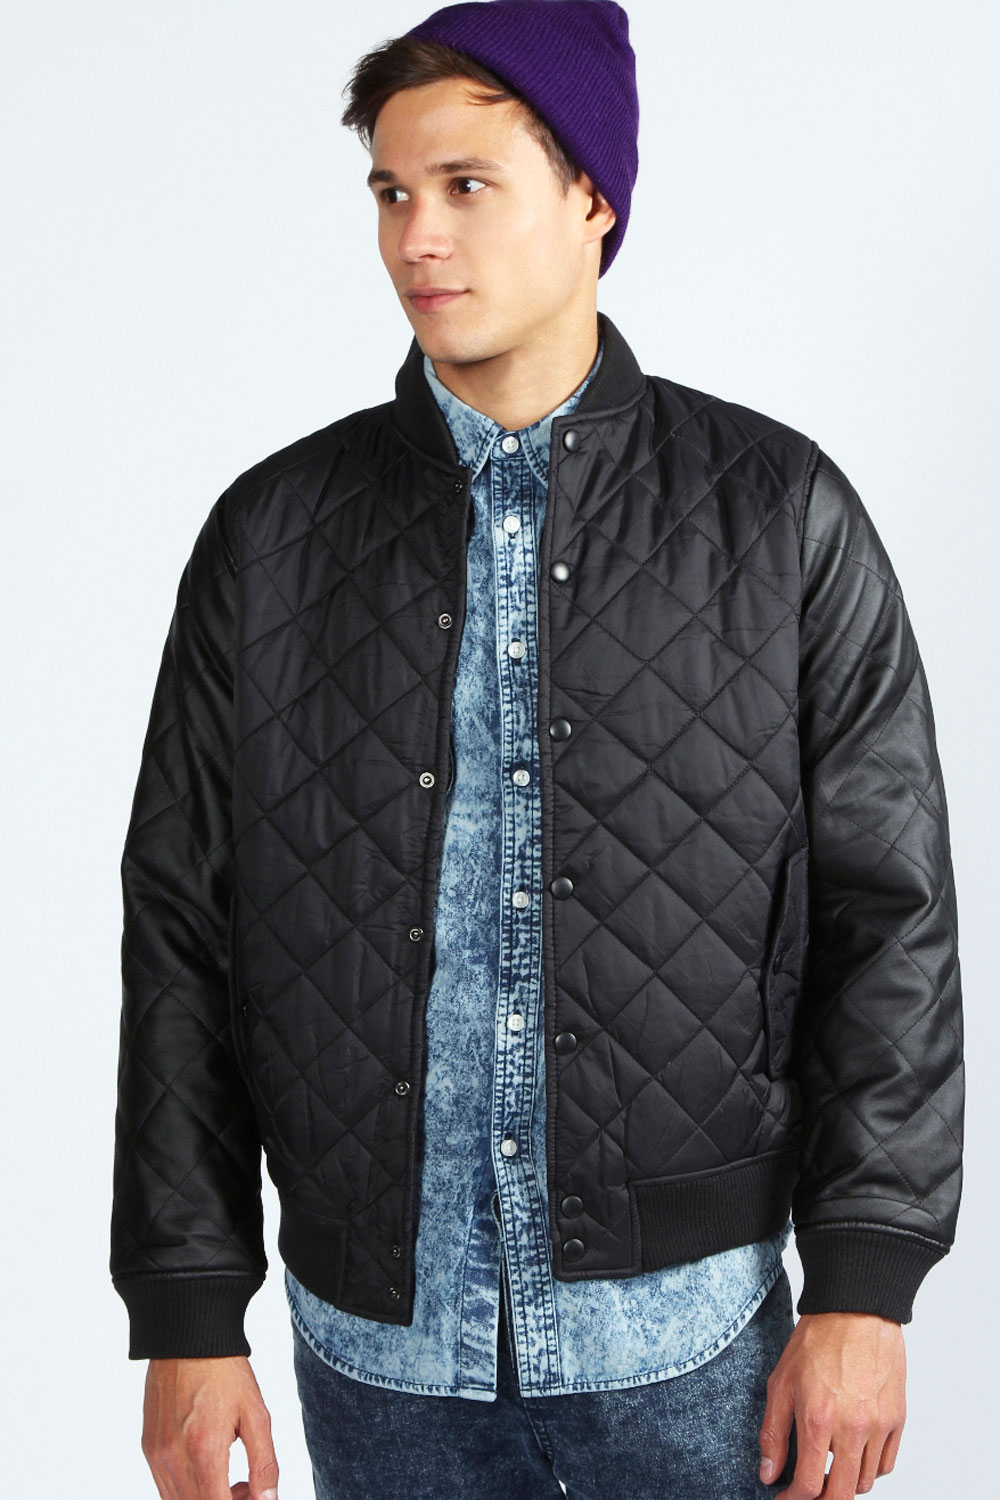 Boohoo-Mens-Quilted-Pu-Sleeve-Baseball-Jacket-In-Black